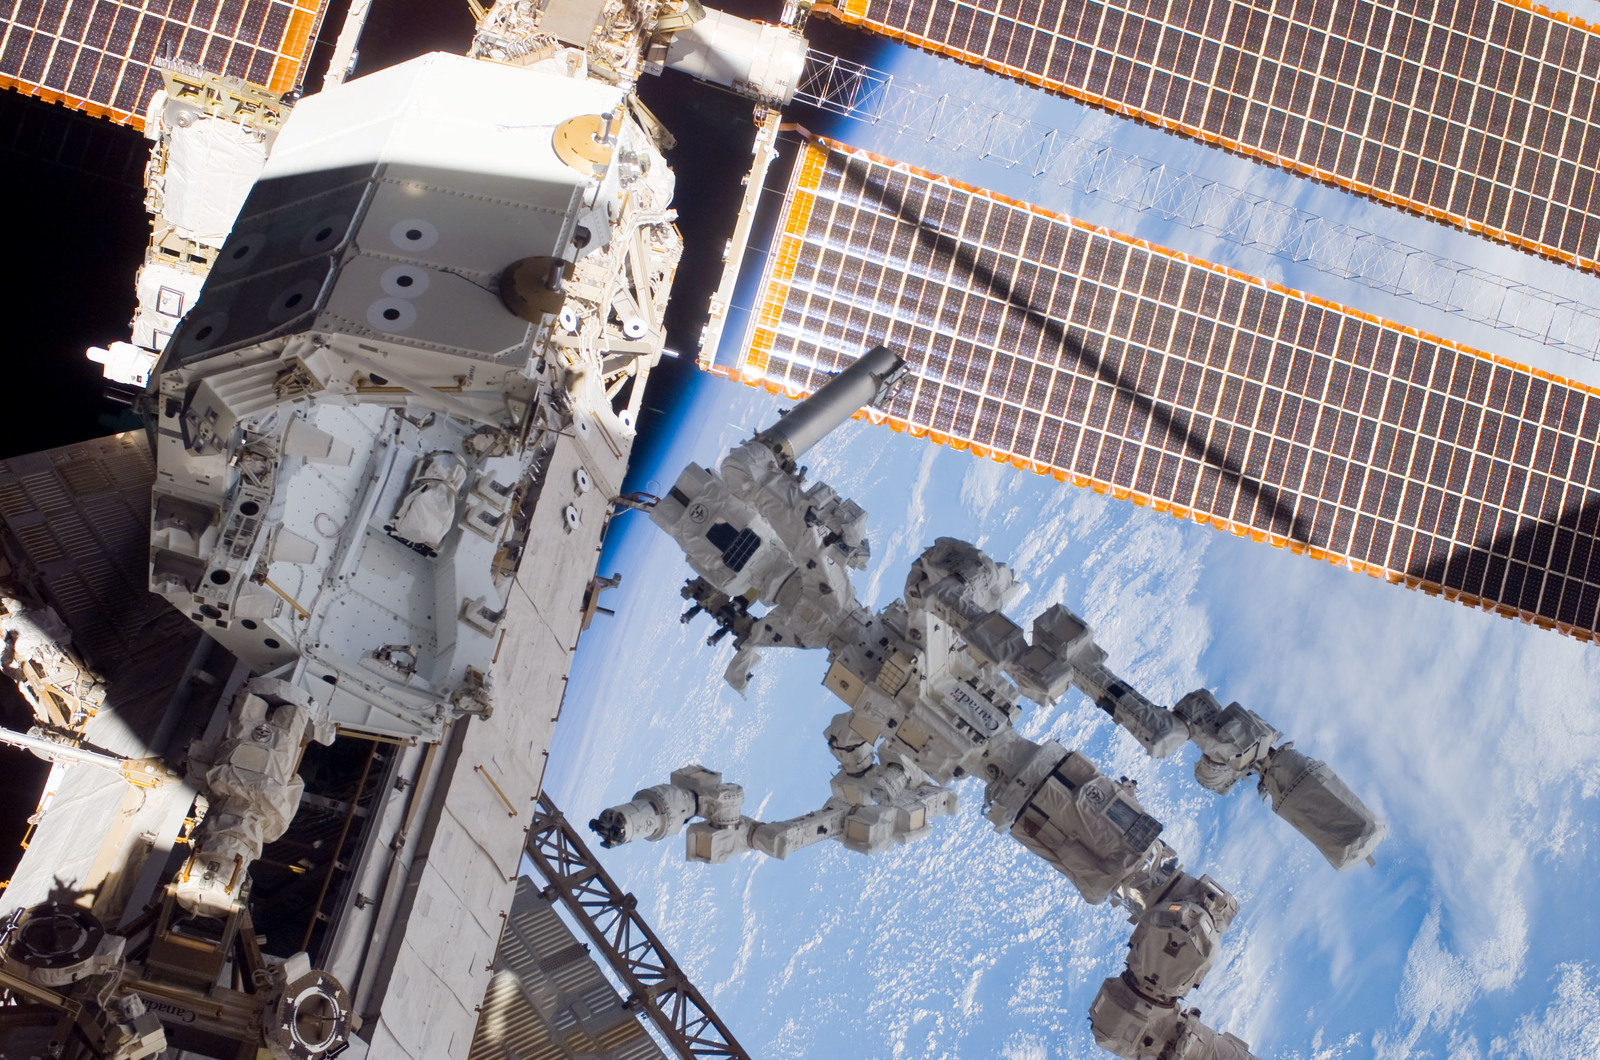 S123E007089 - STS-123 - Dextre on P1 Truss platform during Expedition 16 / STS-123 Joint Operations